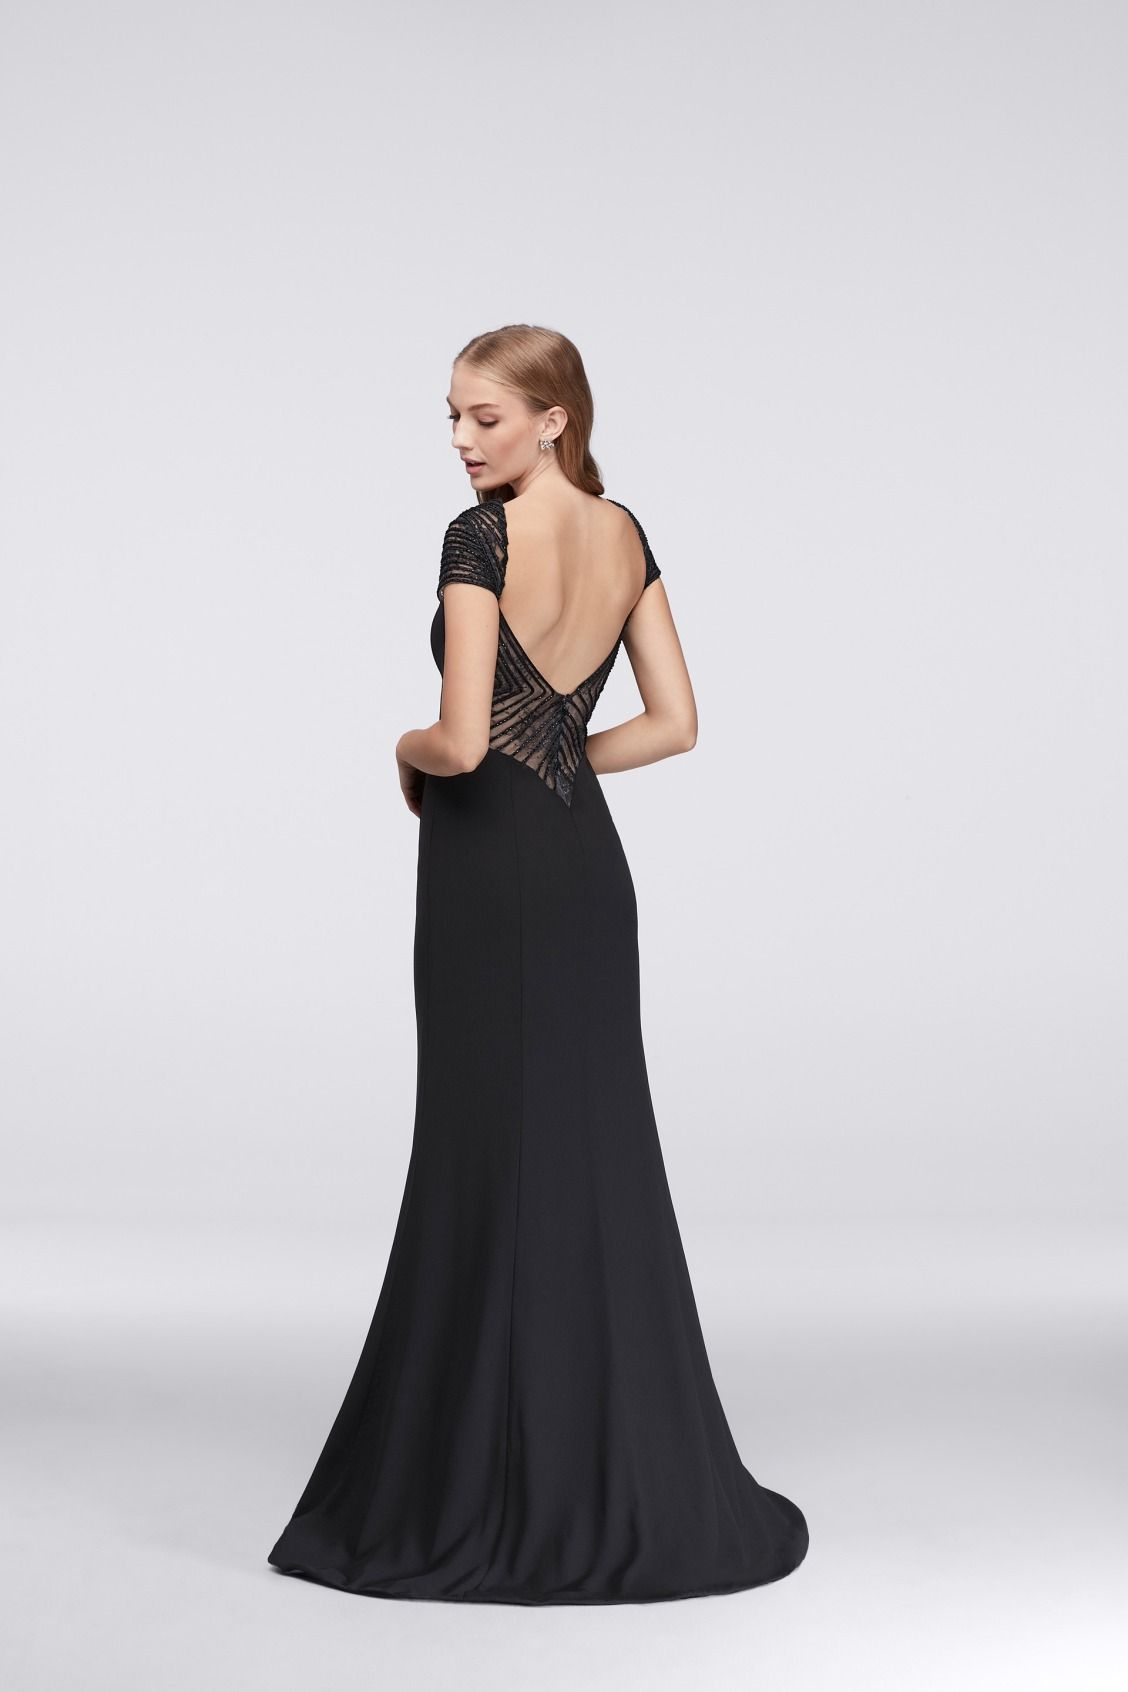 4fc1102246 ... go wrong with classic black for prom. This Crepe Column Prom Dress with  Geometric Beaded Illusion Neckline is perfect. Shop this look at David s  Bridal